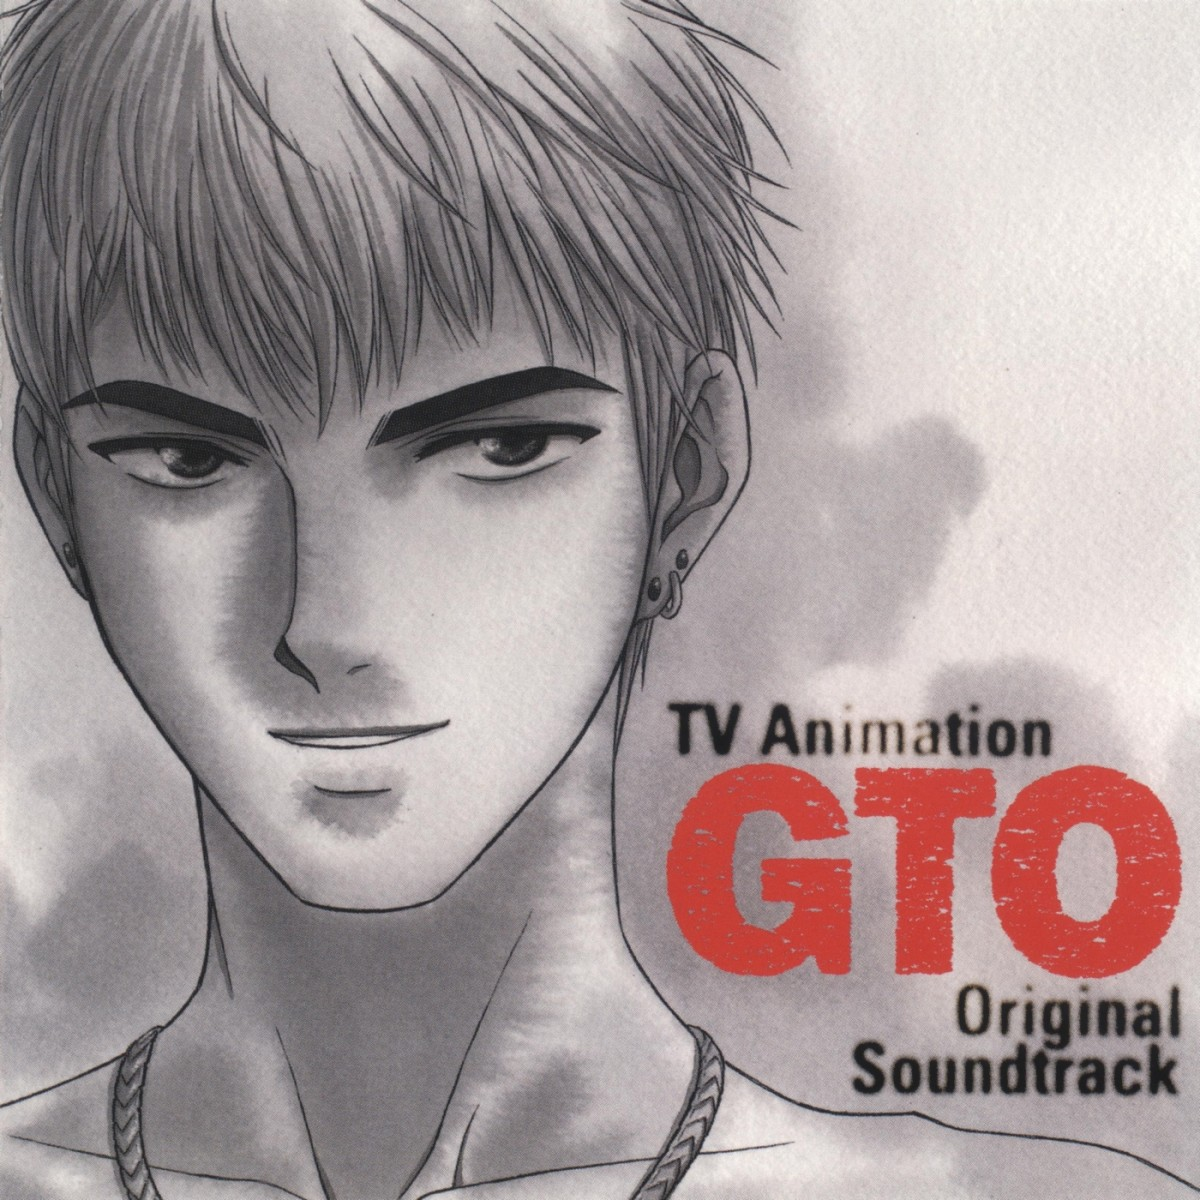 Great Teacher Onizuka (GTO) Anime Opening & Ending Theme Songs With Lyrics